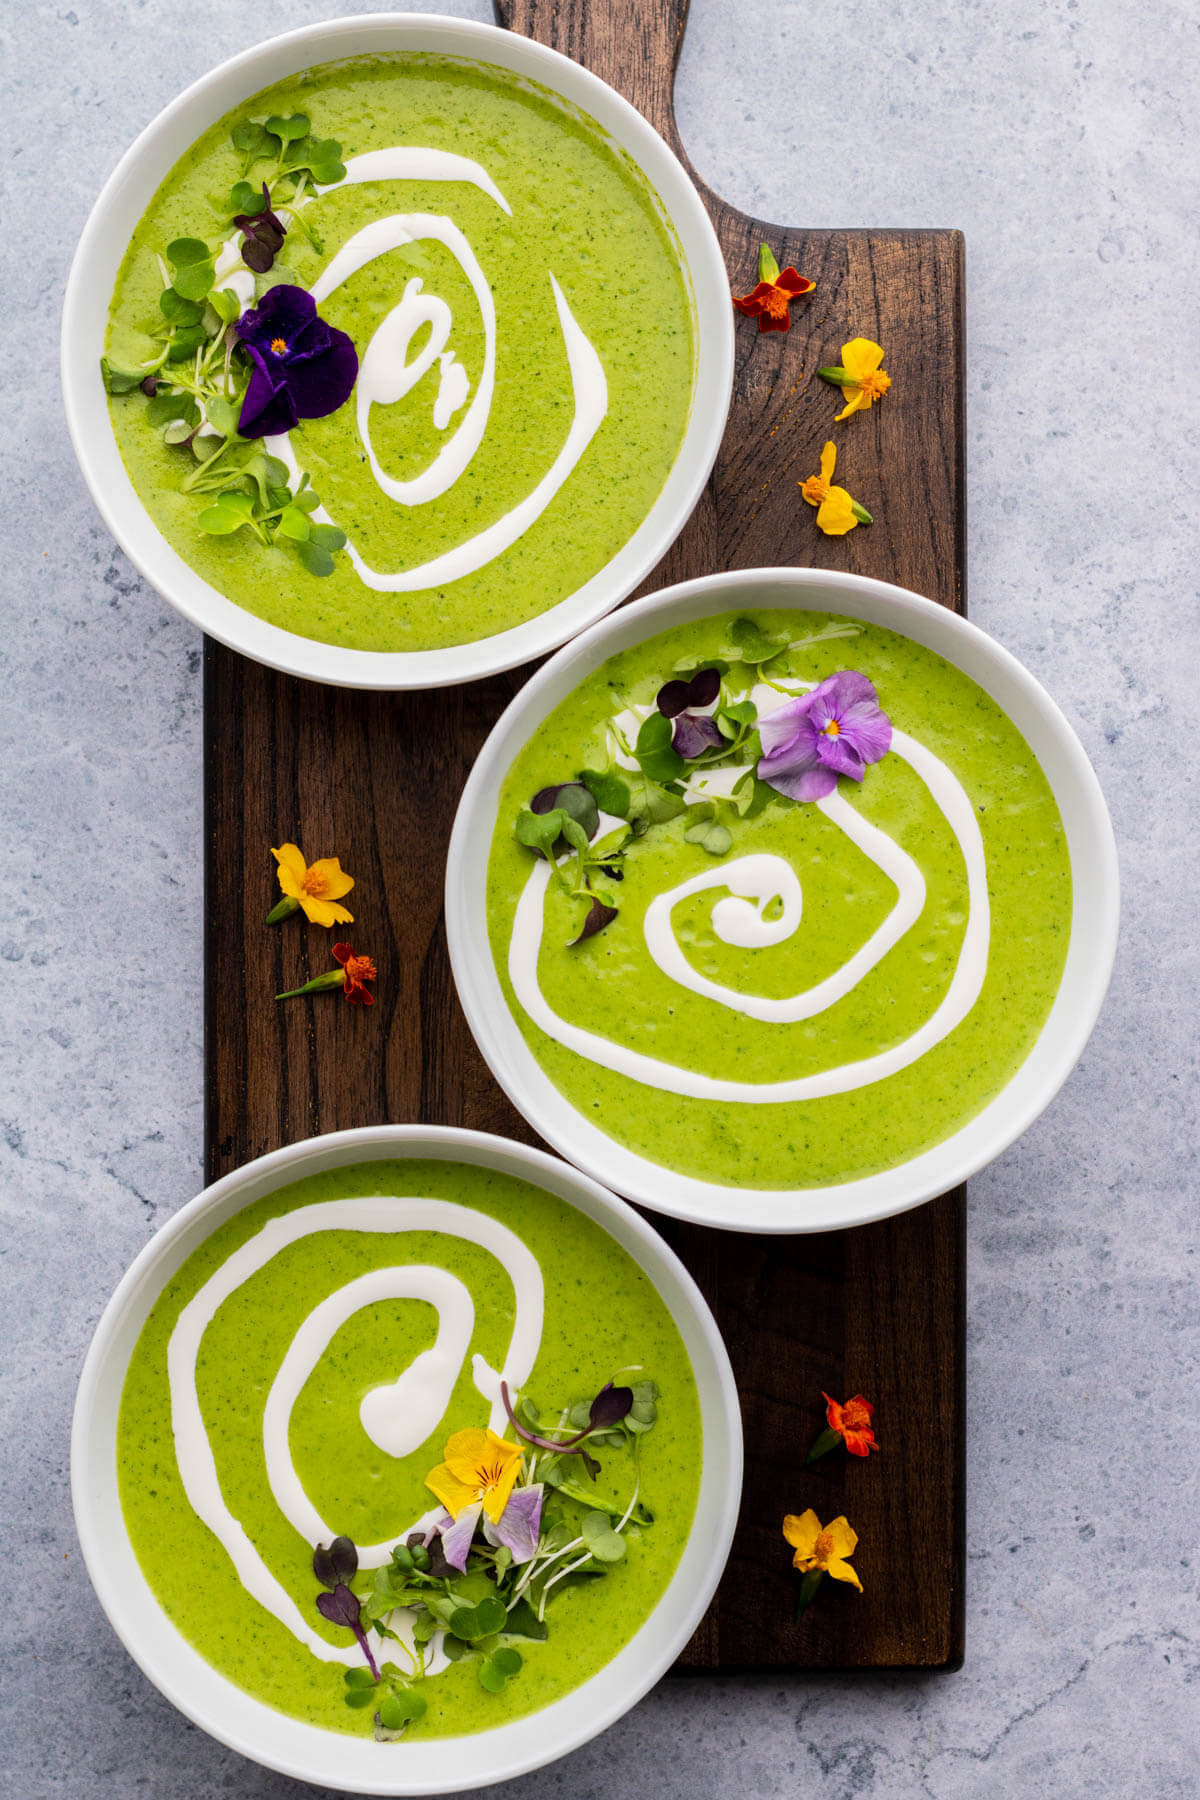 Three bowls of bright green nettle soup with swirls of white cream and microgreen edible flower garnish.